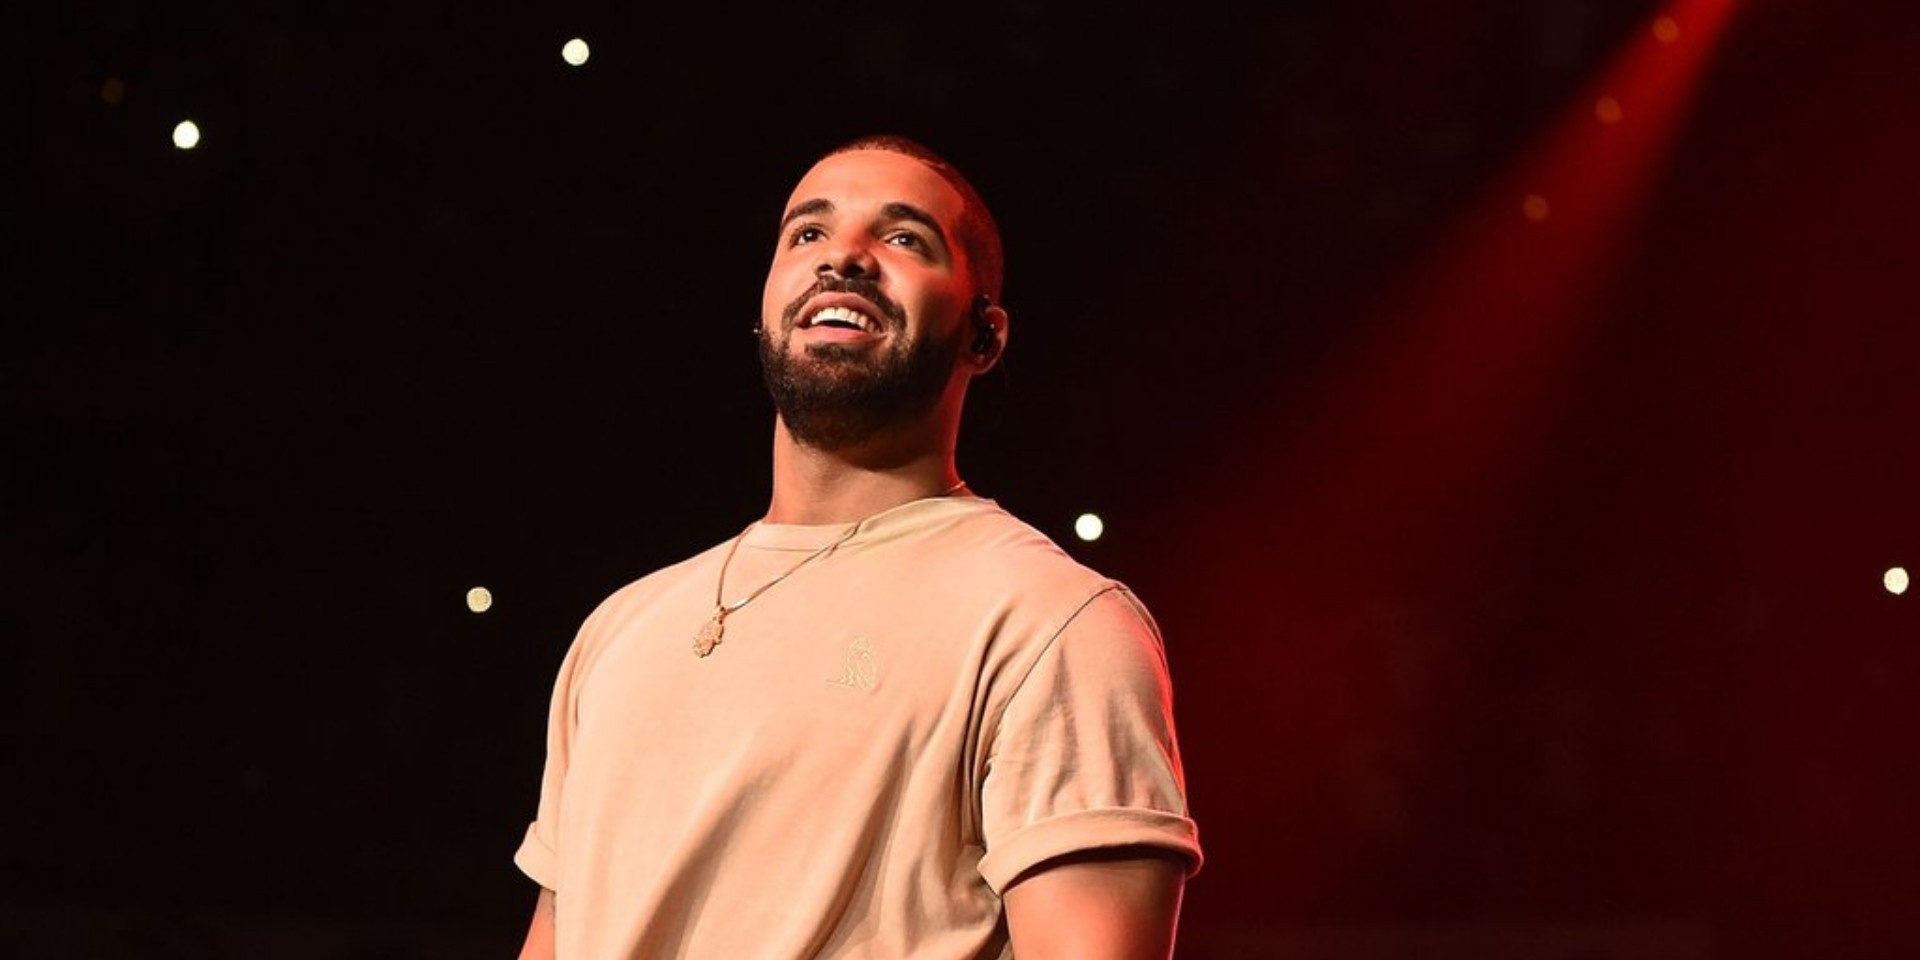 Drake breaks Billboard record for most top 10 songs in a year